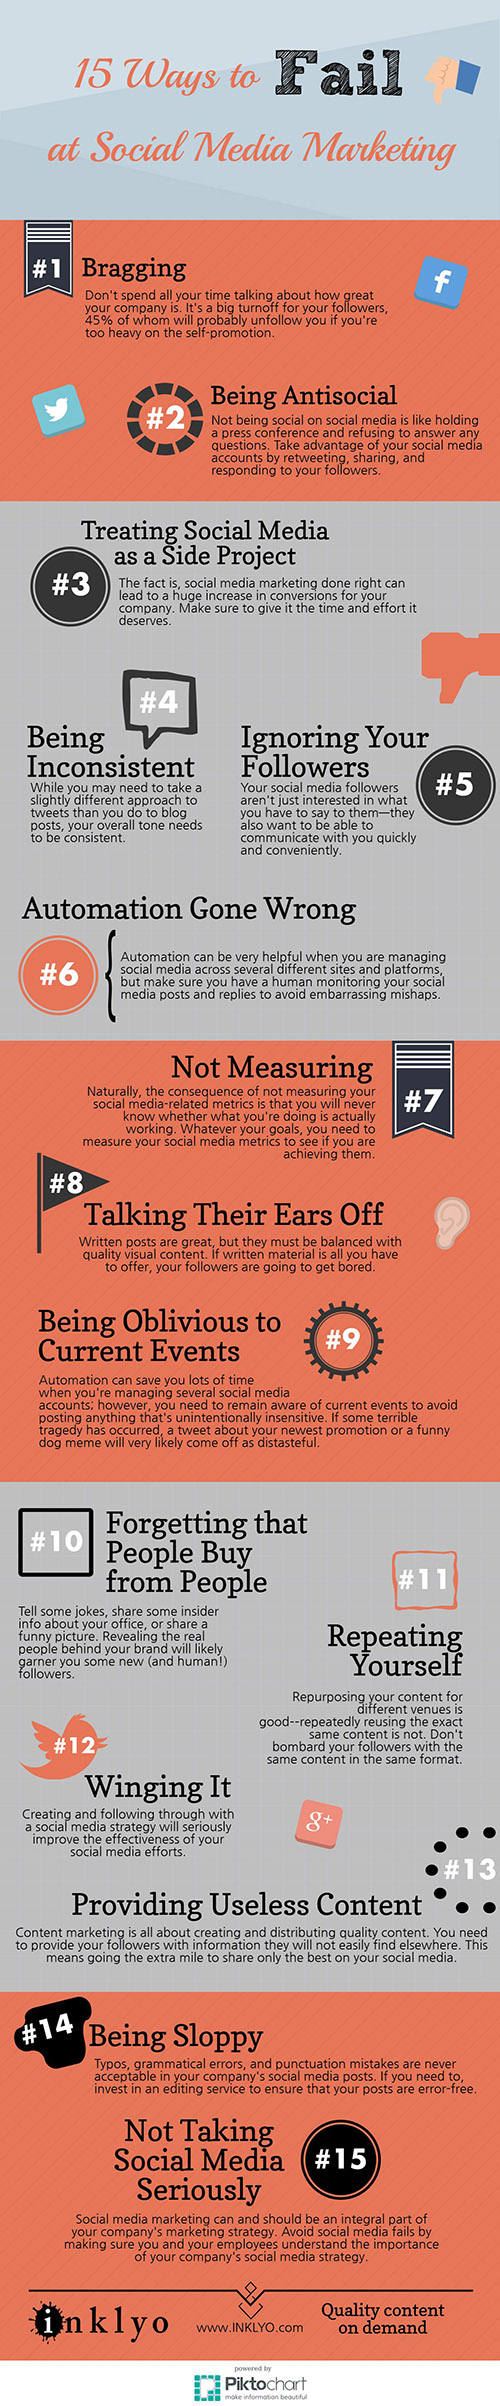 15 Ways to Fail at Social Media Marketing (Infographic)